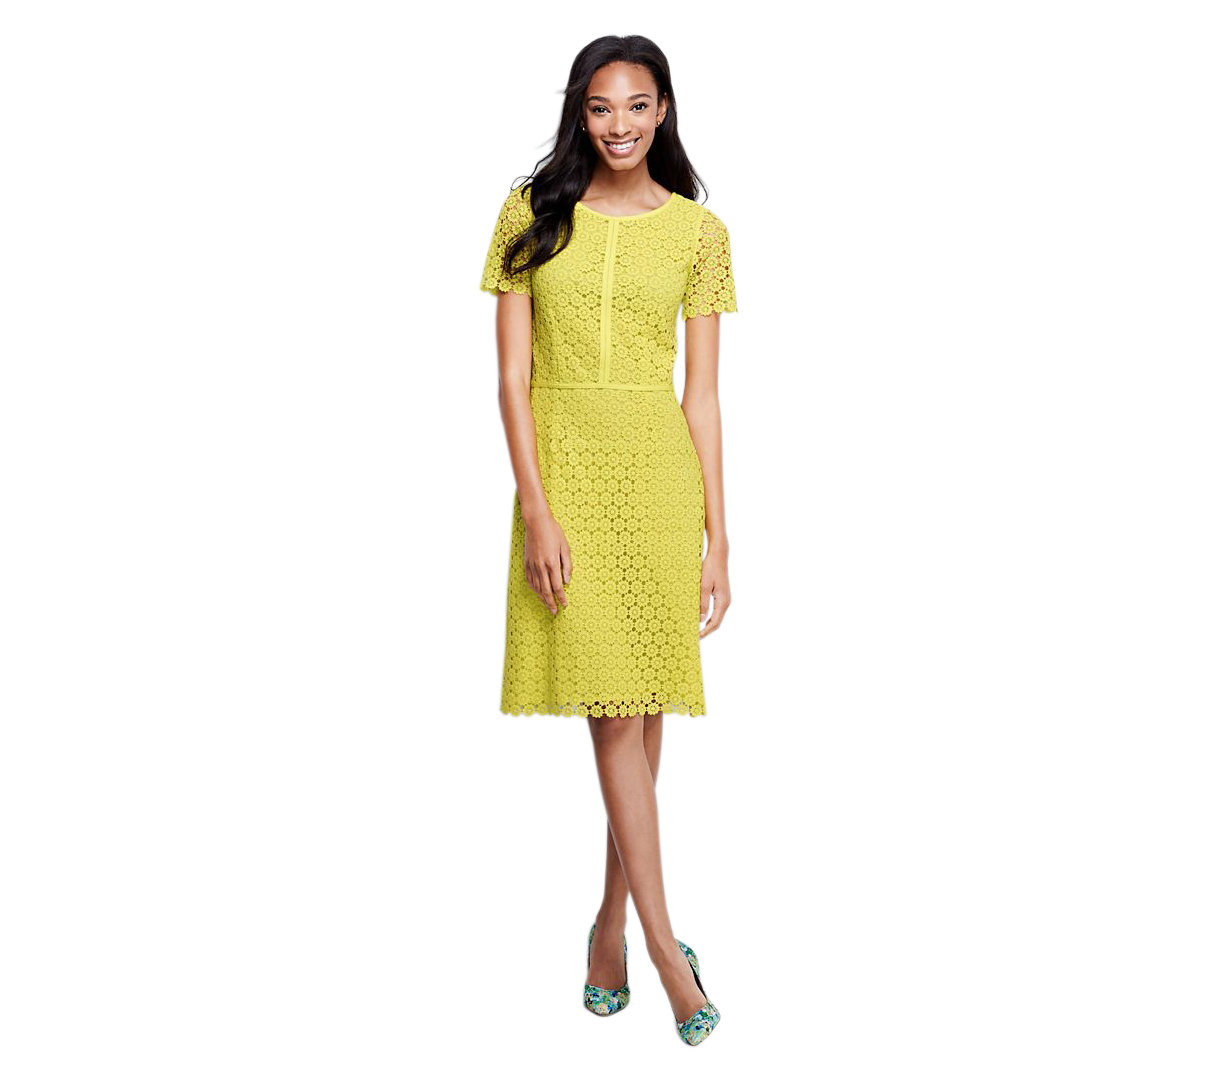 Galerry yellow sheath dress outfit